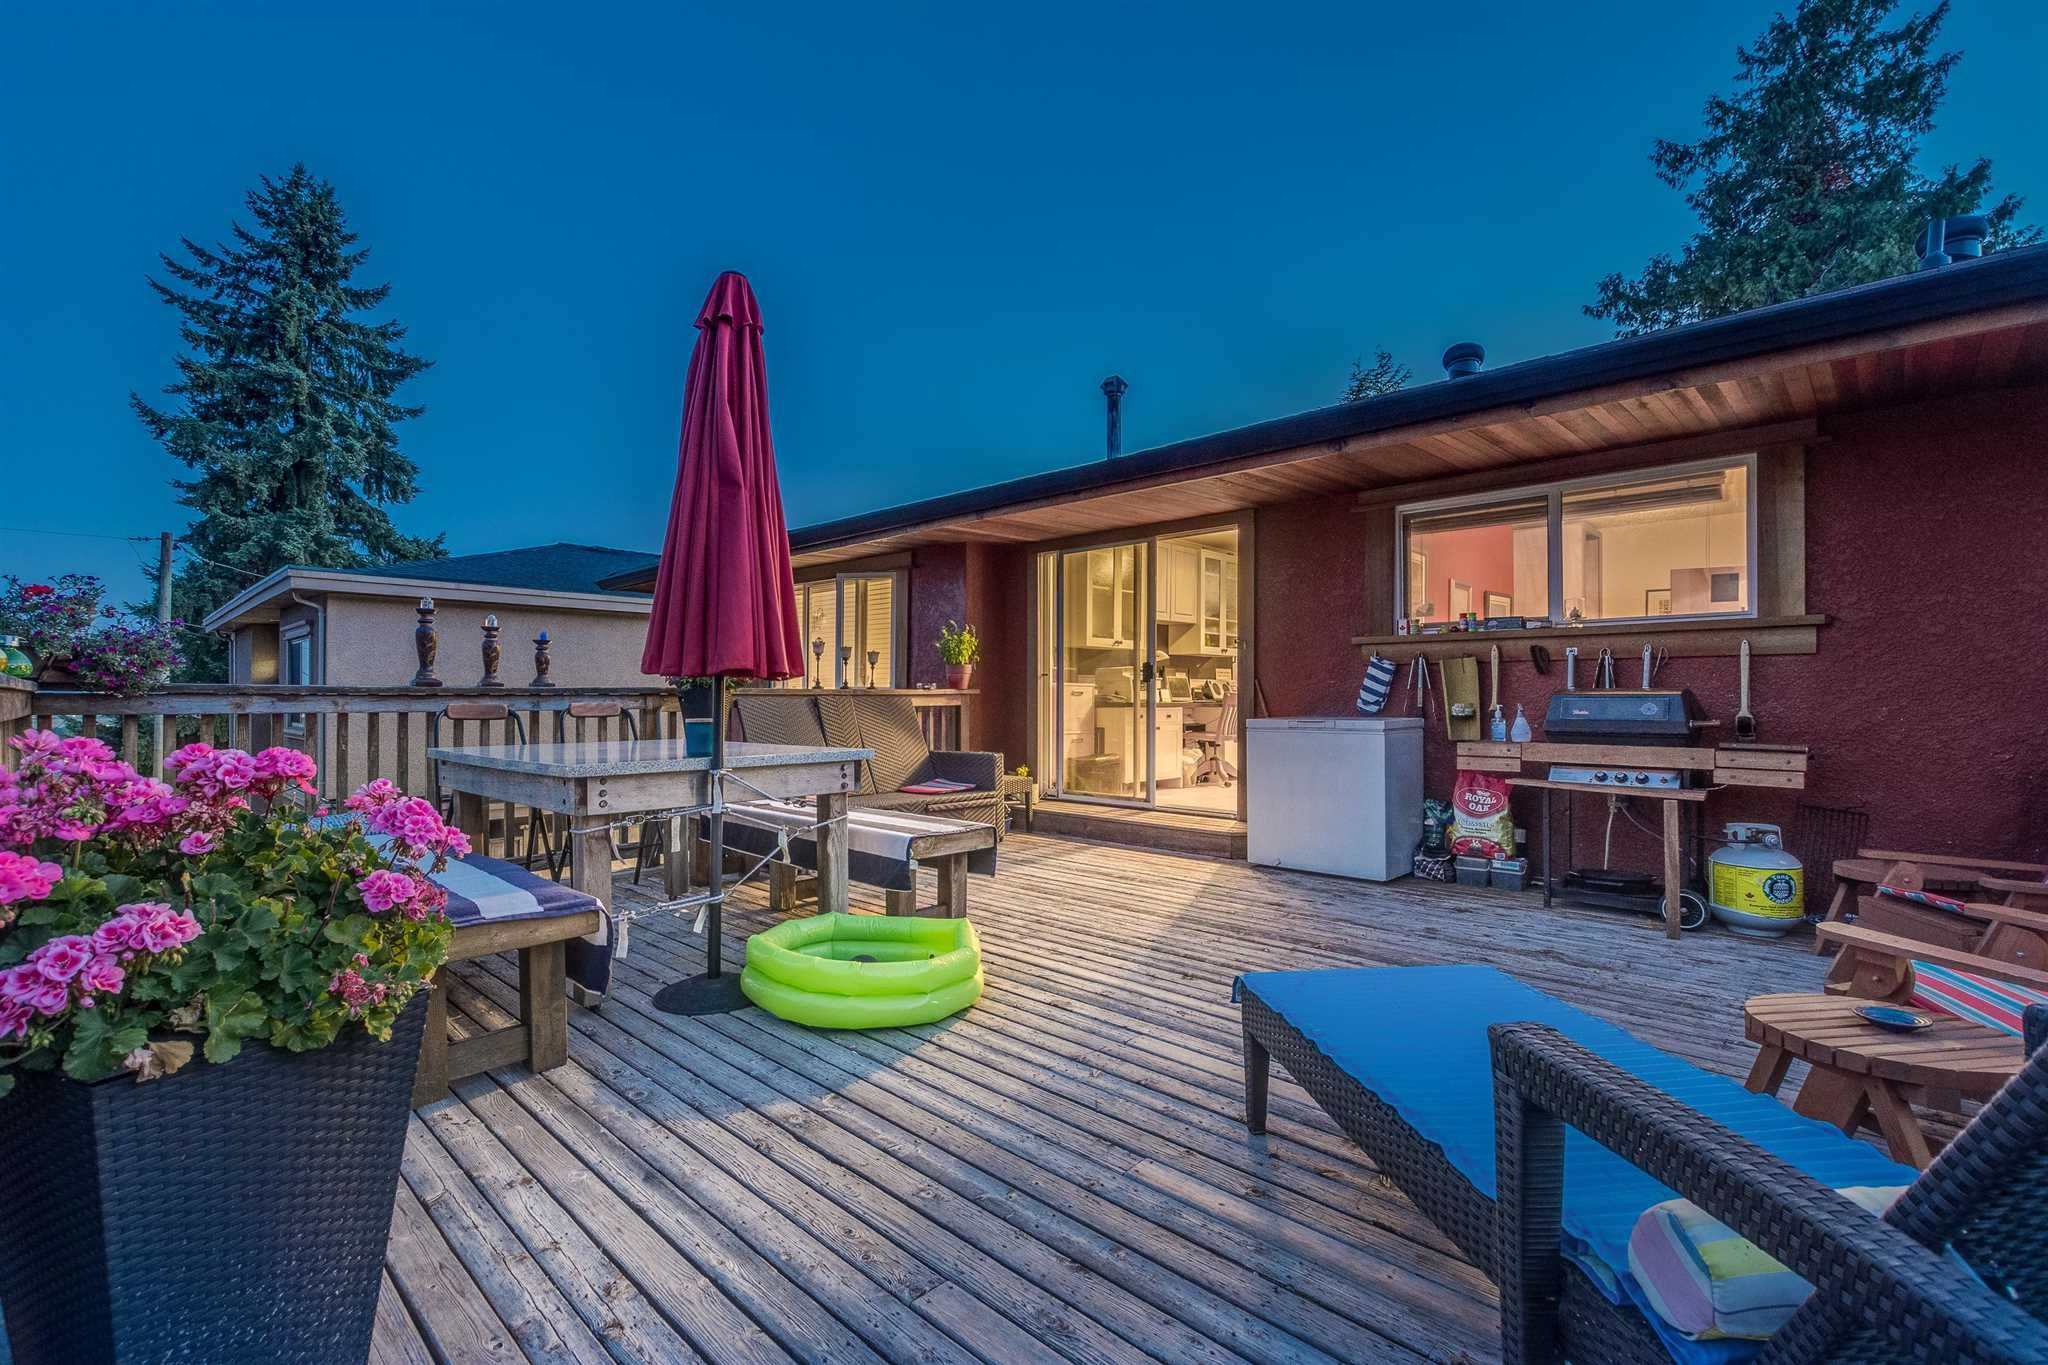 Main Photo: 7676 SUSSEX AVENUE in Burnaby: South Slope House for sale (Burnaby South)  : MLS®# R2606758